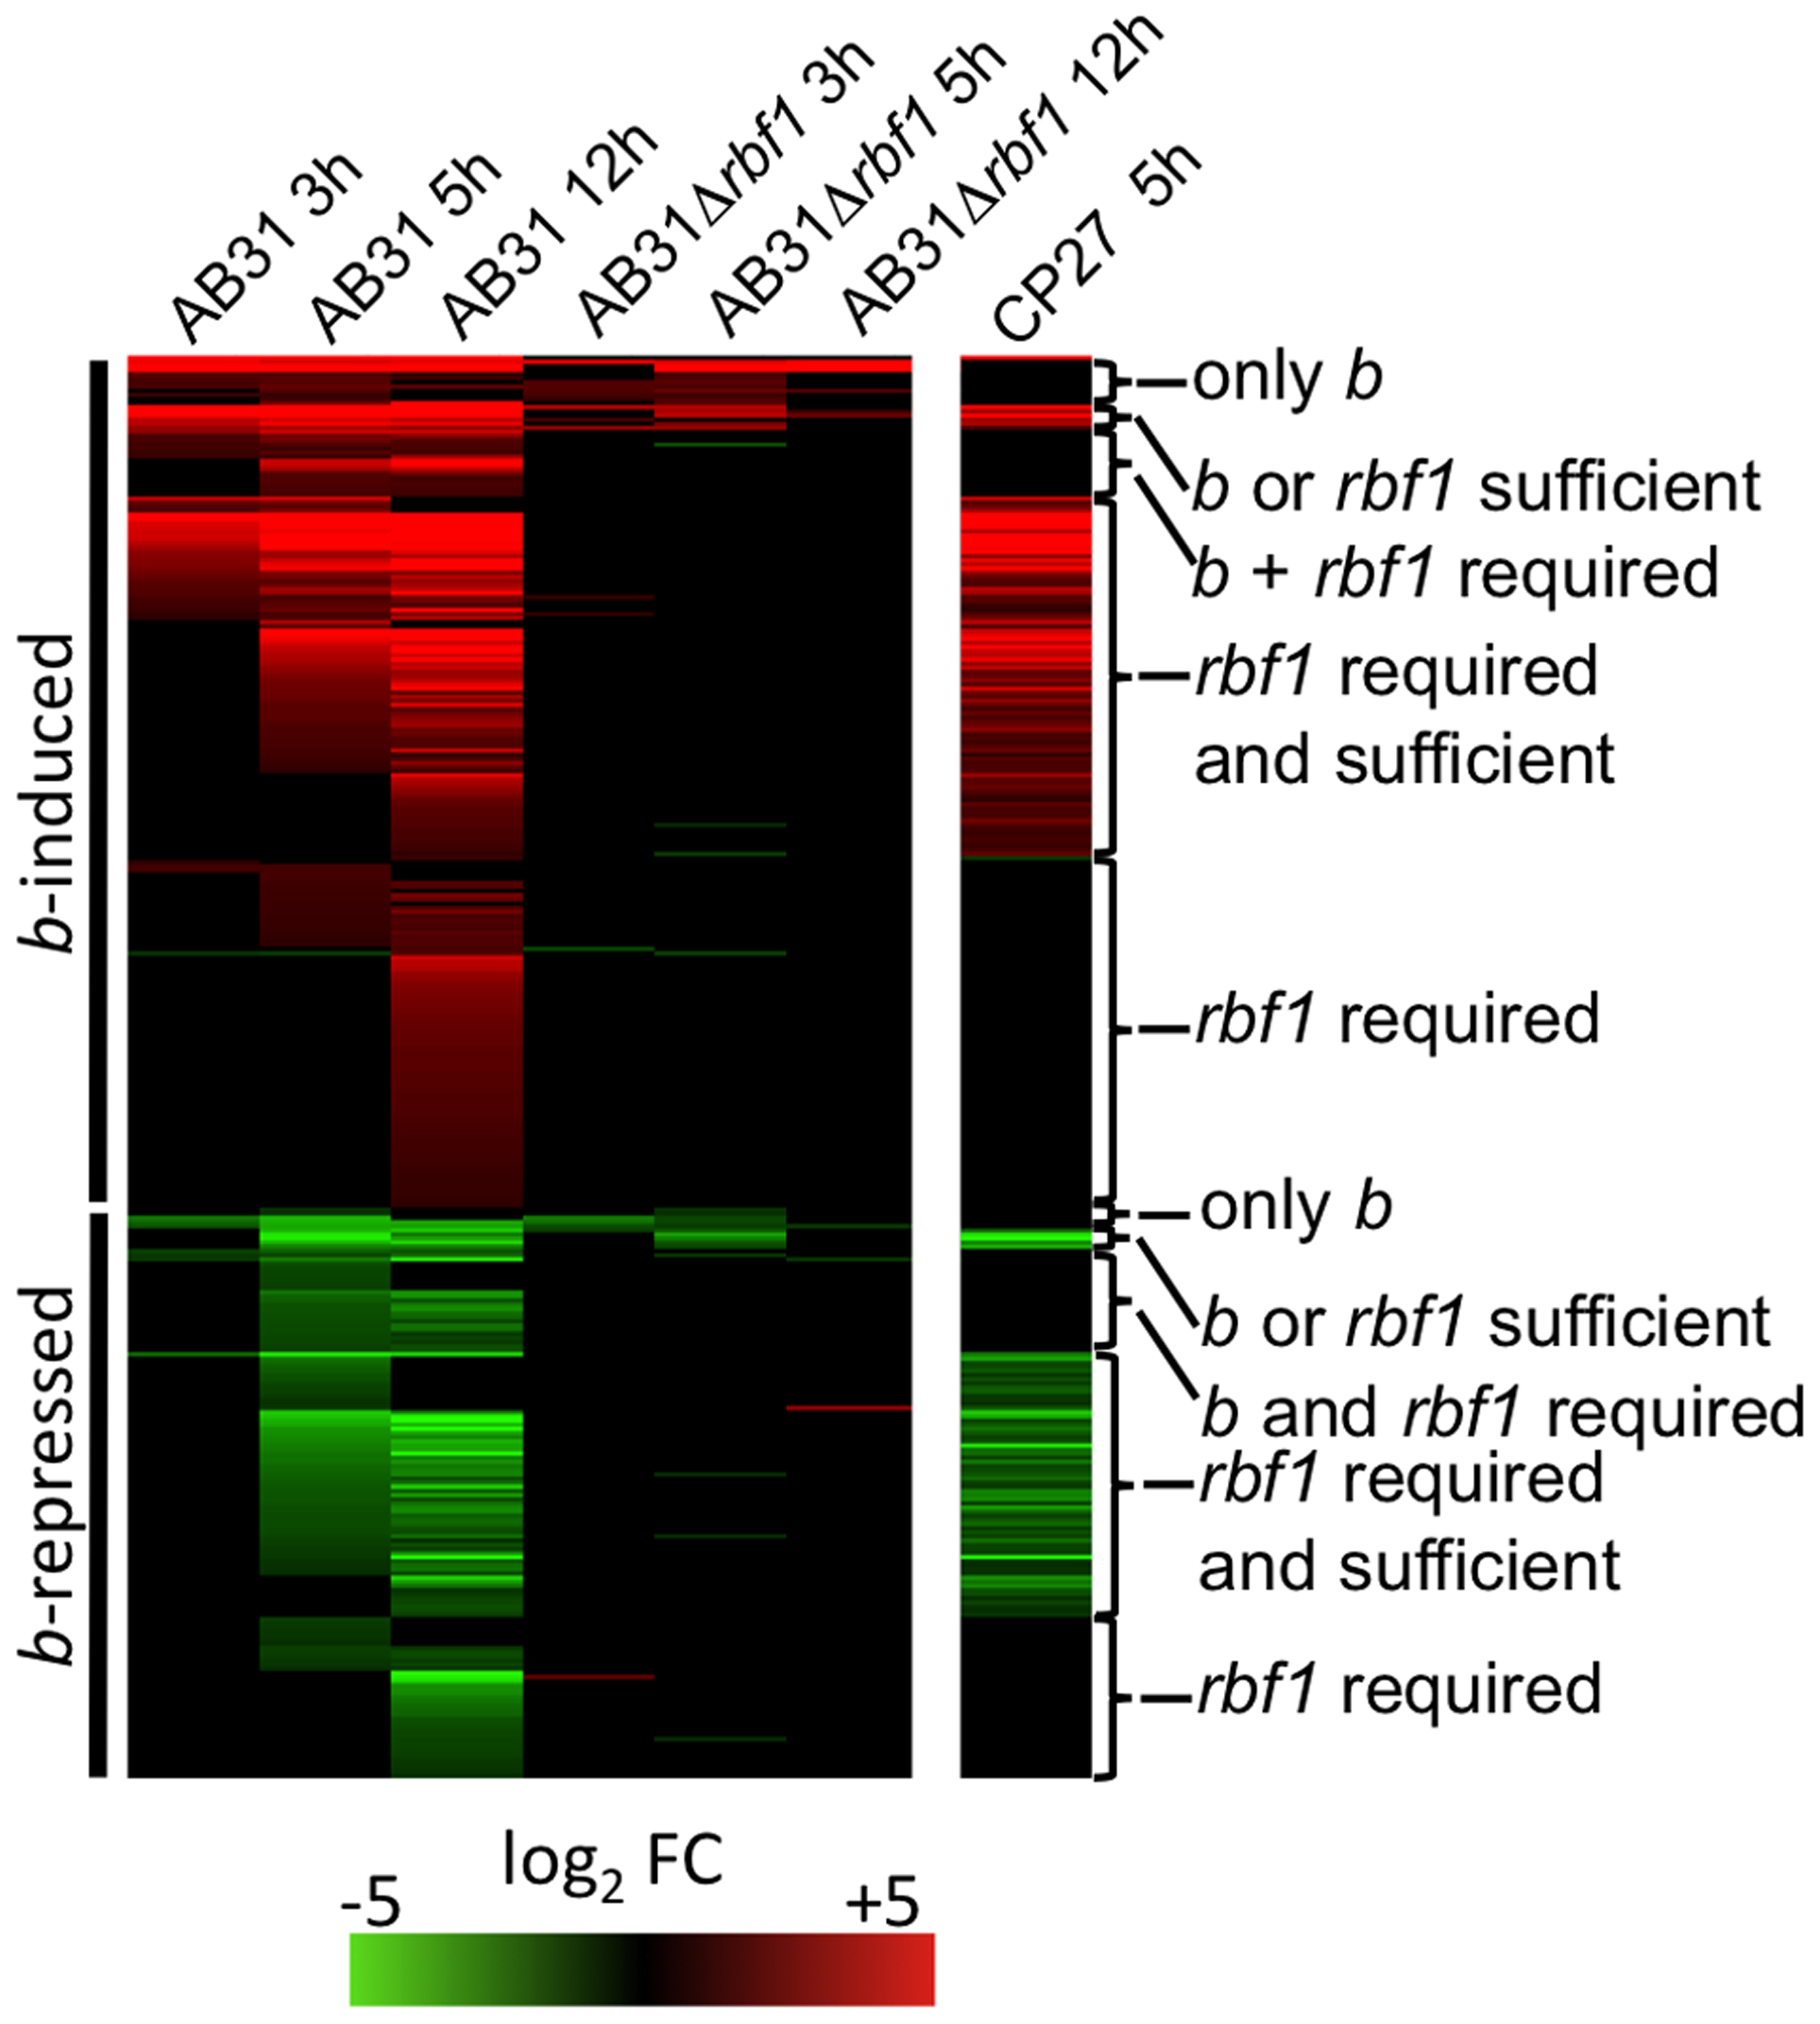 Rbf1 is required and sufficient for expression of <i>b</i>-dependent genes.